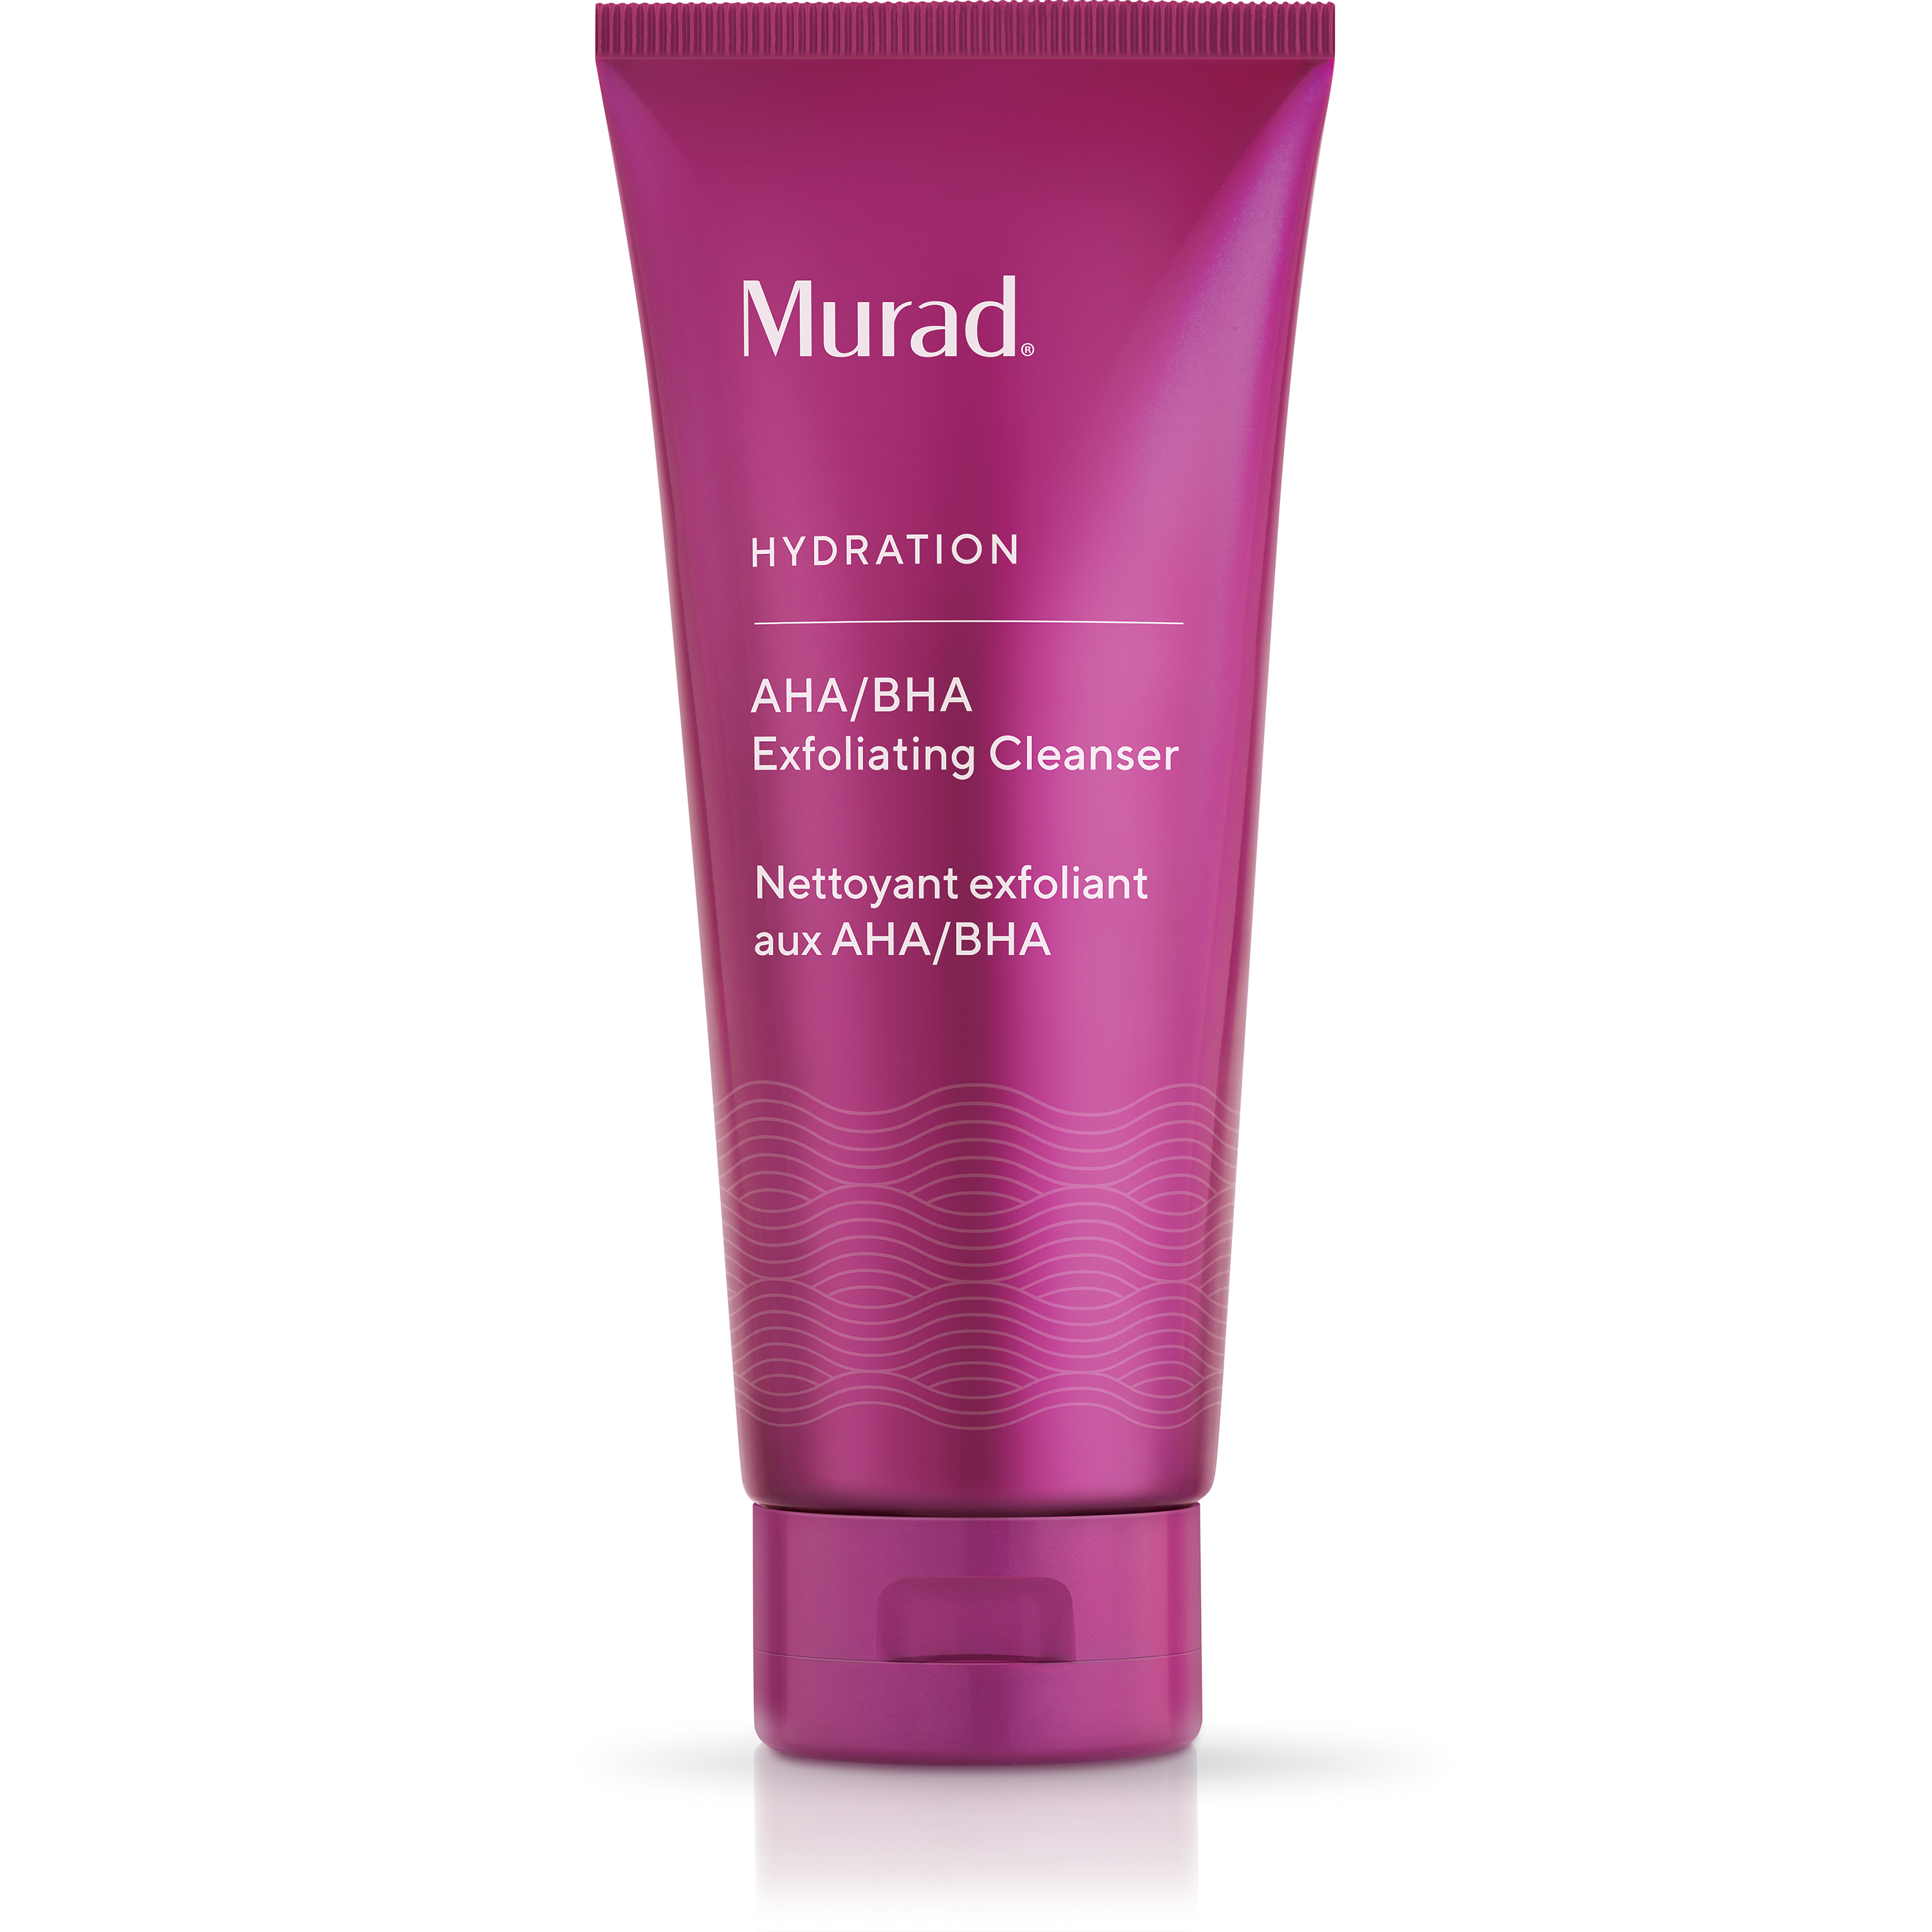 Featured Products - Murad AHA/BHA Exfoliating Cleanser - Click to Shop